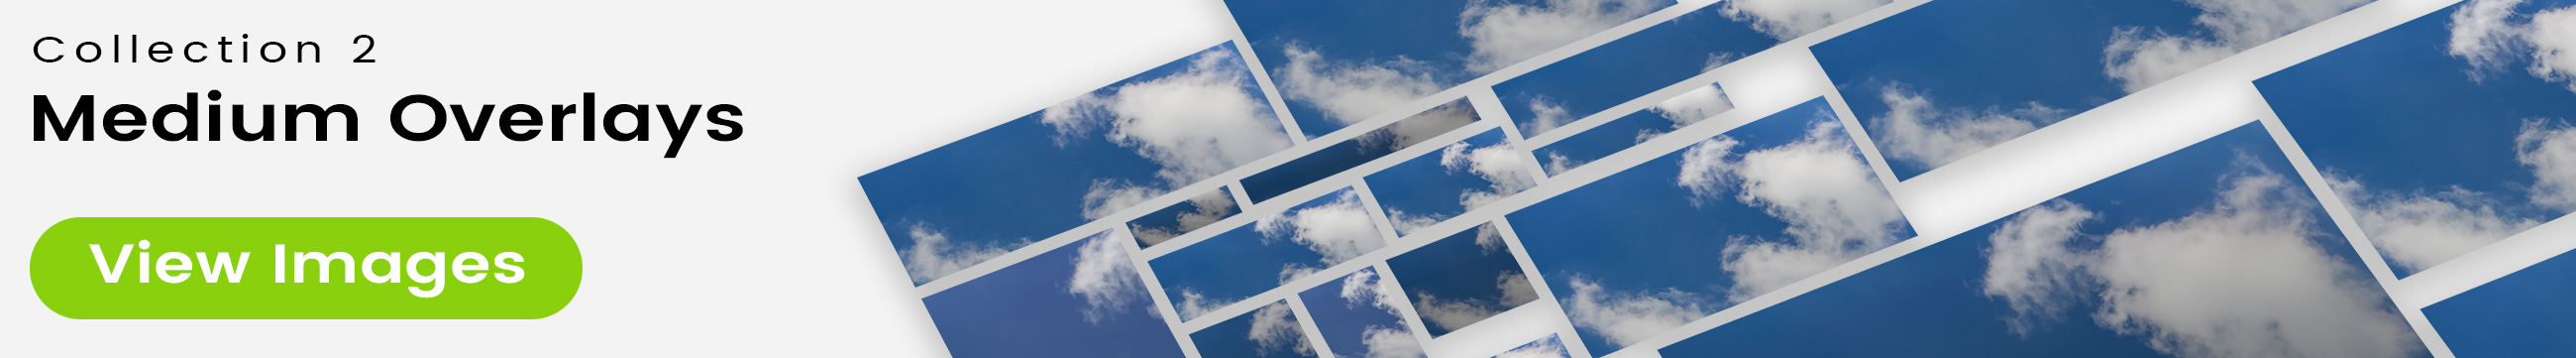 See 25 bonus images included with clouds stock image 9475. Collection 2 of 4 features a medium-dark overlay design.